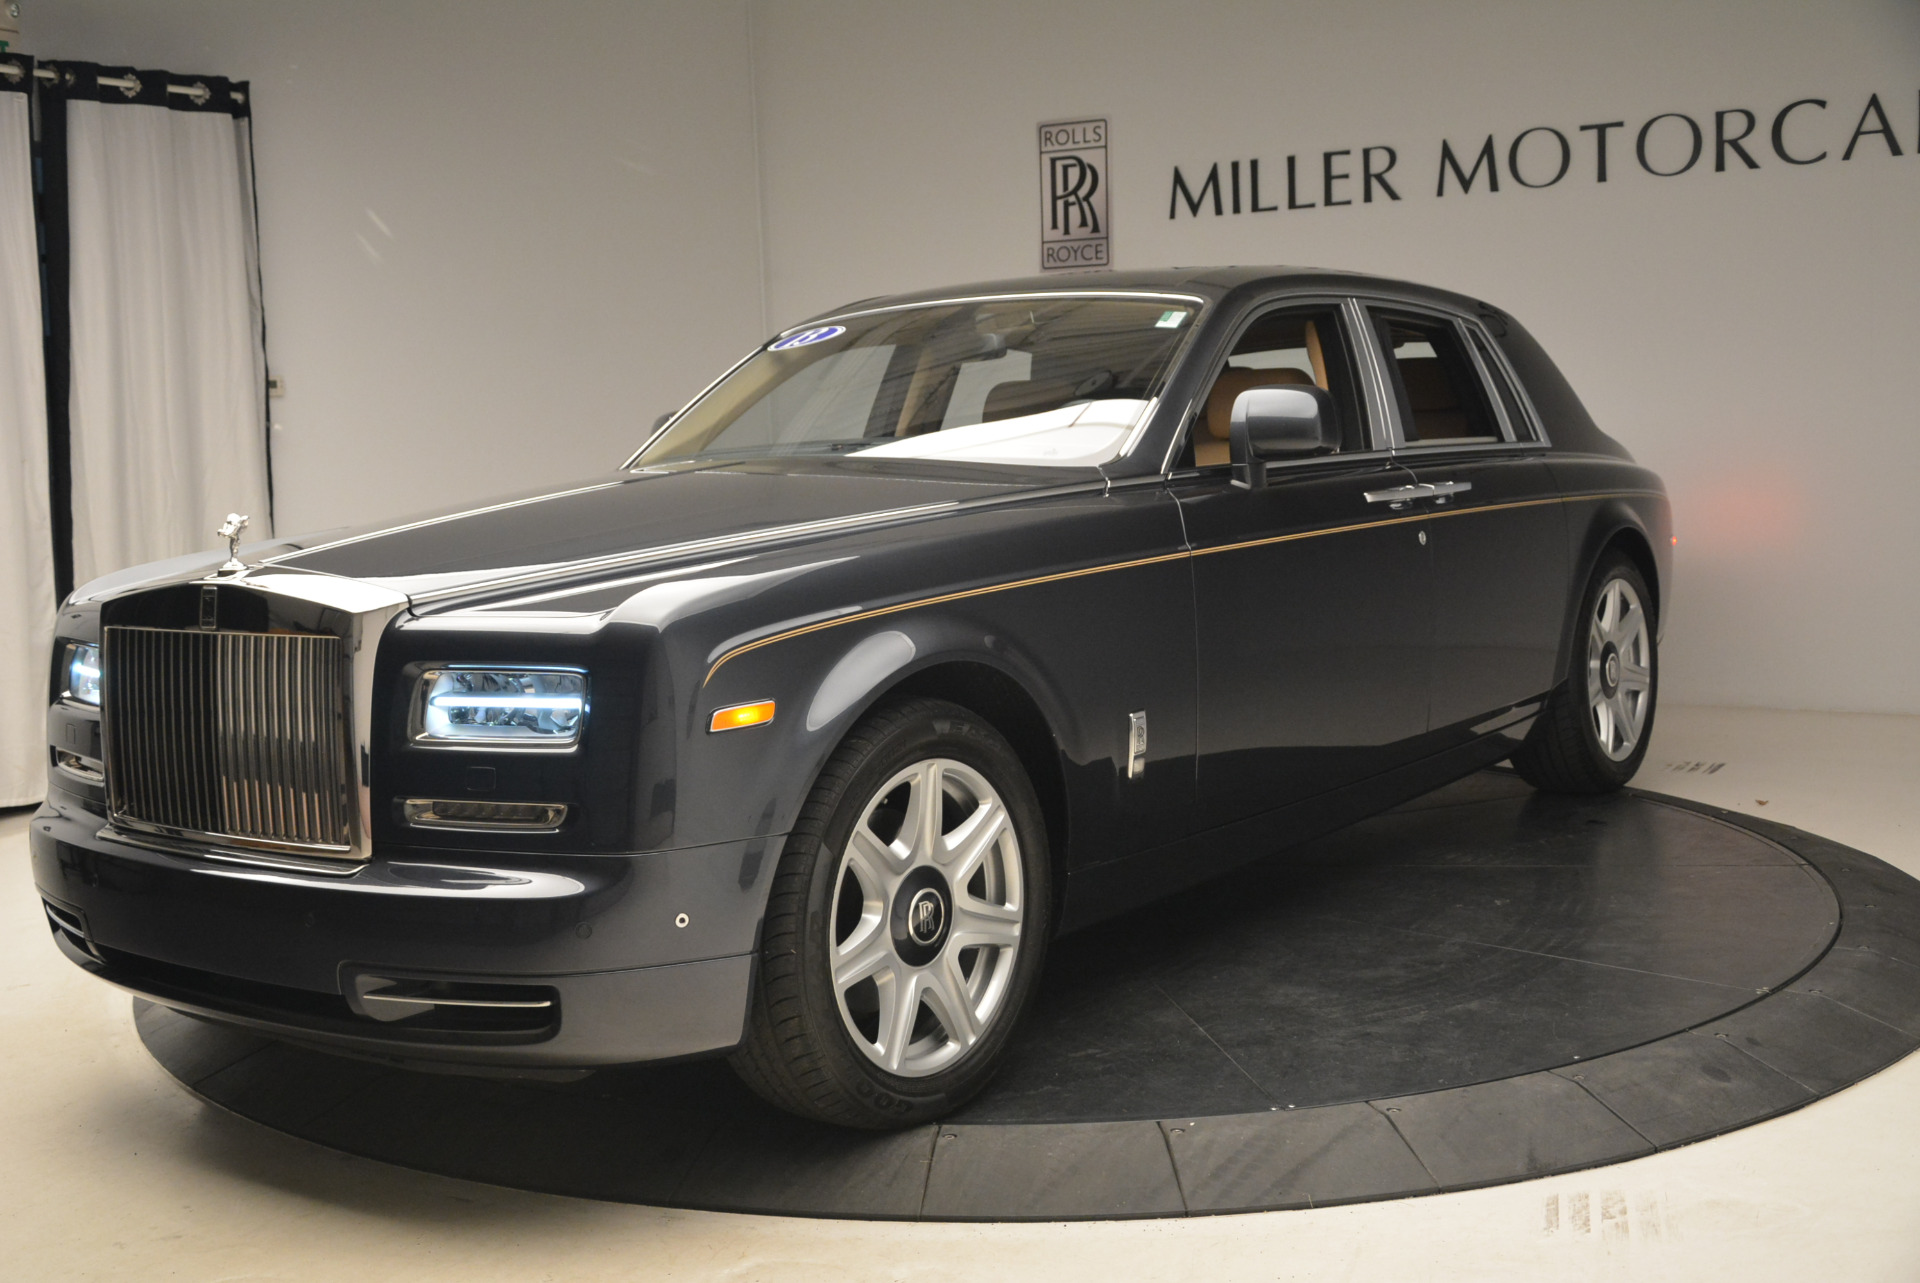 Used 2013 Rolls-Royce Phantom for sale Sold at Aston Martin of Greenwich in Greenwich CT 06830 1